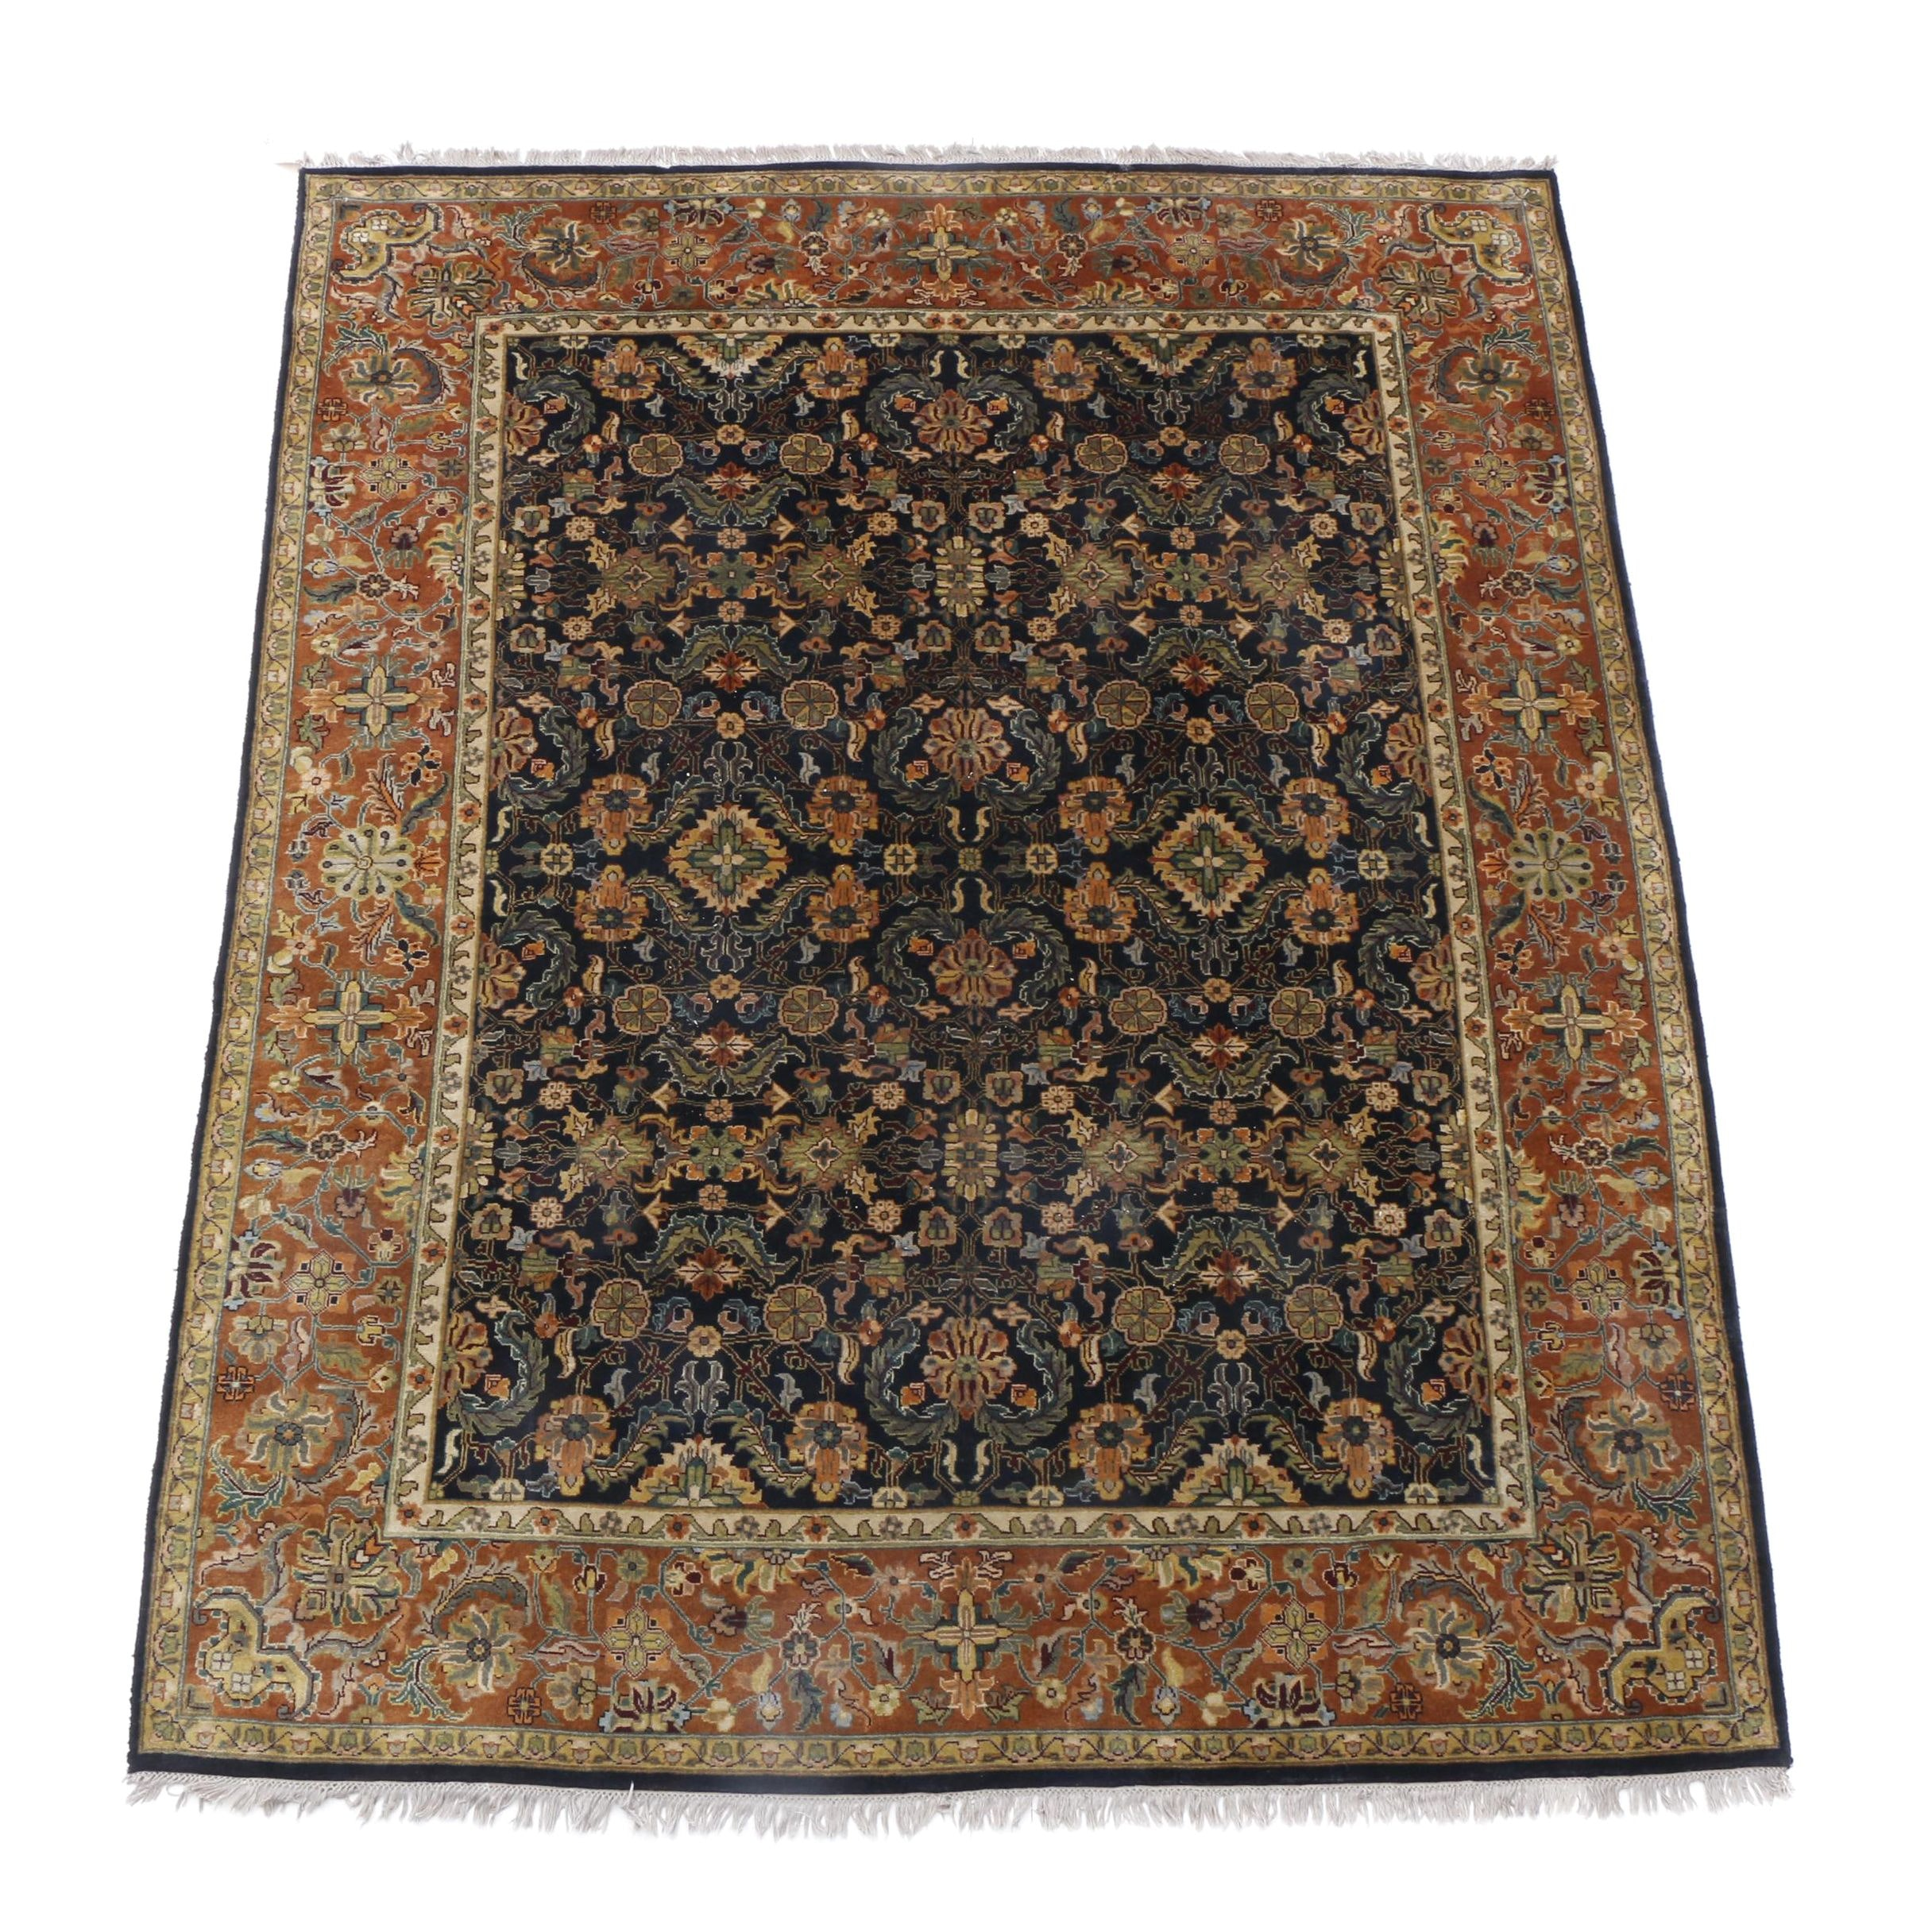 AKRI Hand-Knotted Indian Wool Rug